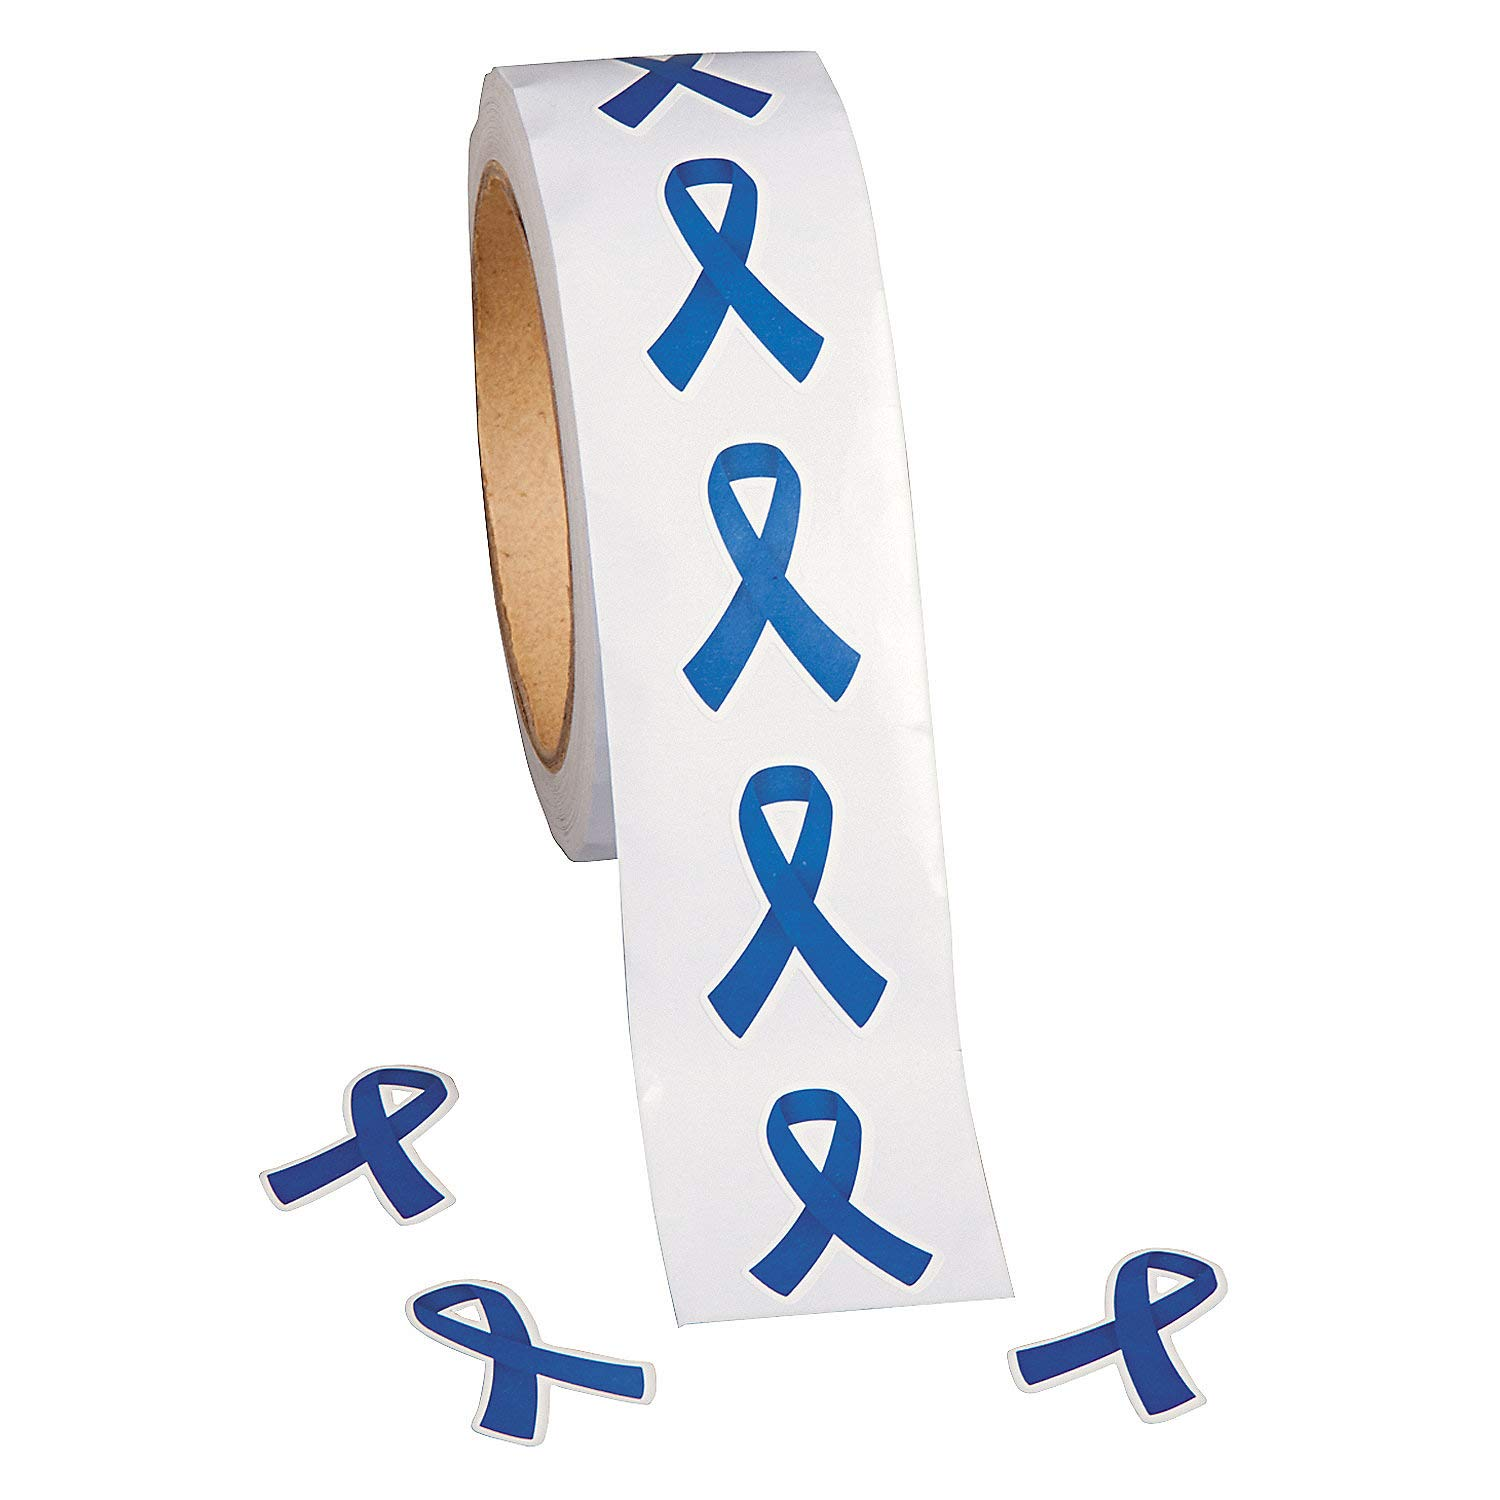 Awareness Ribbon Roll Stickrs Blue 500pc Roll Fun Express 1 Piece Oriental Trading Company 9//1223 Stickers Stickers Stationery